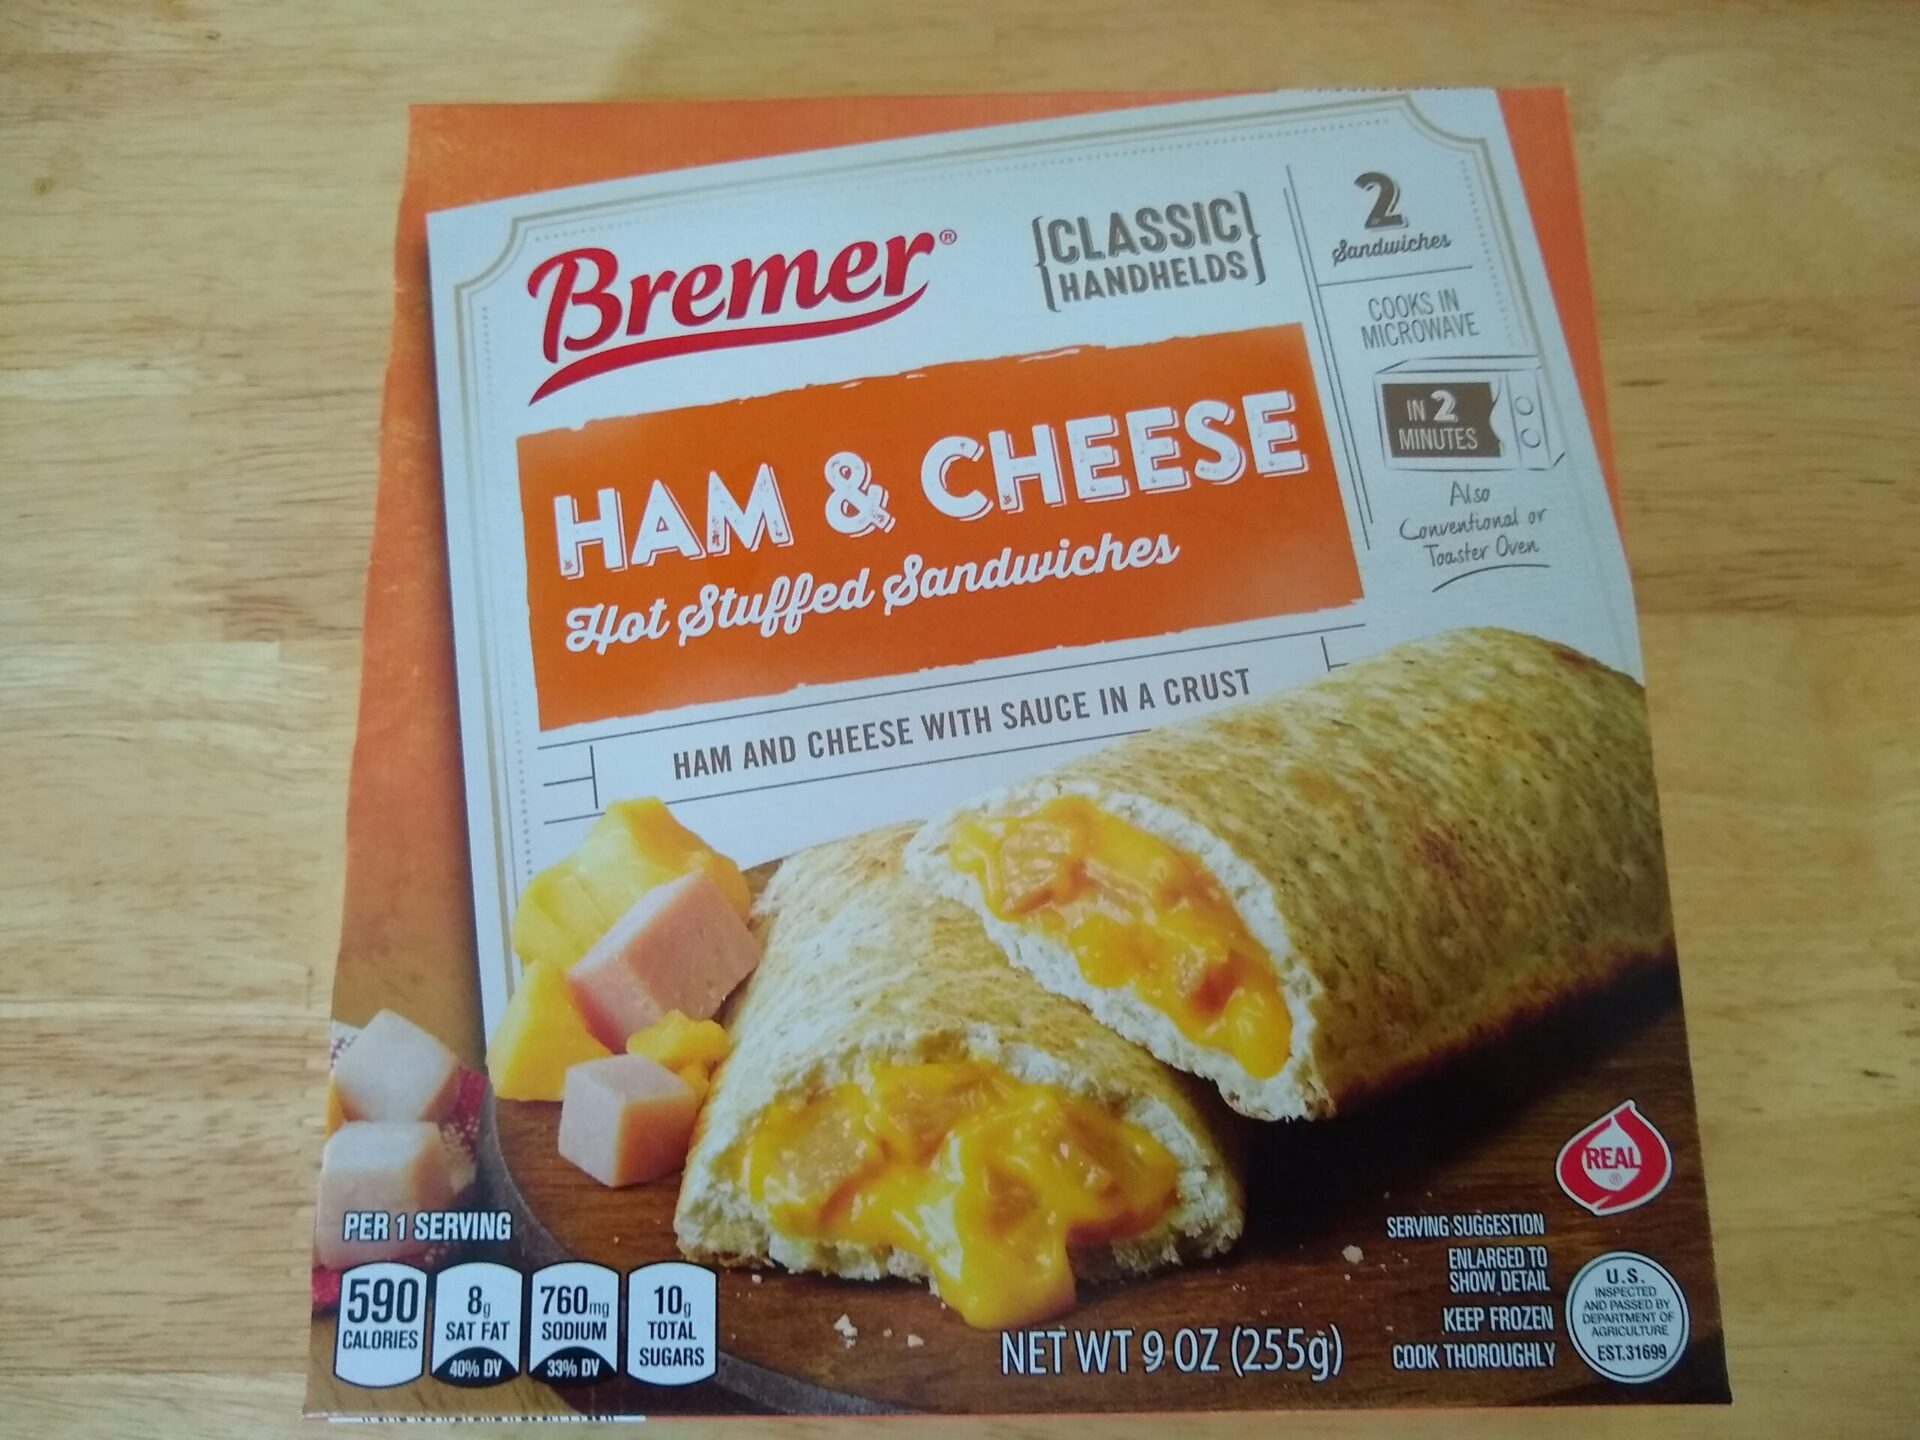 Bremer Hot Stuffed Sandwiches Aldi Reviewer